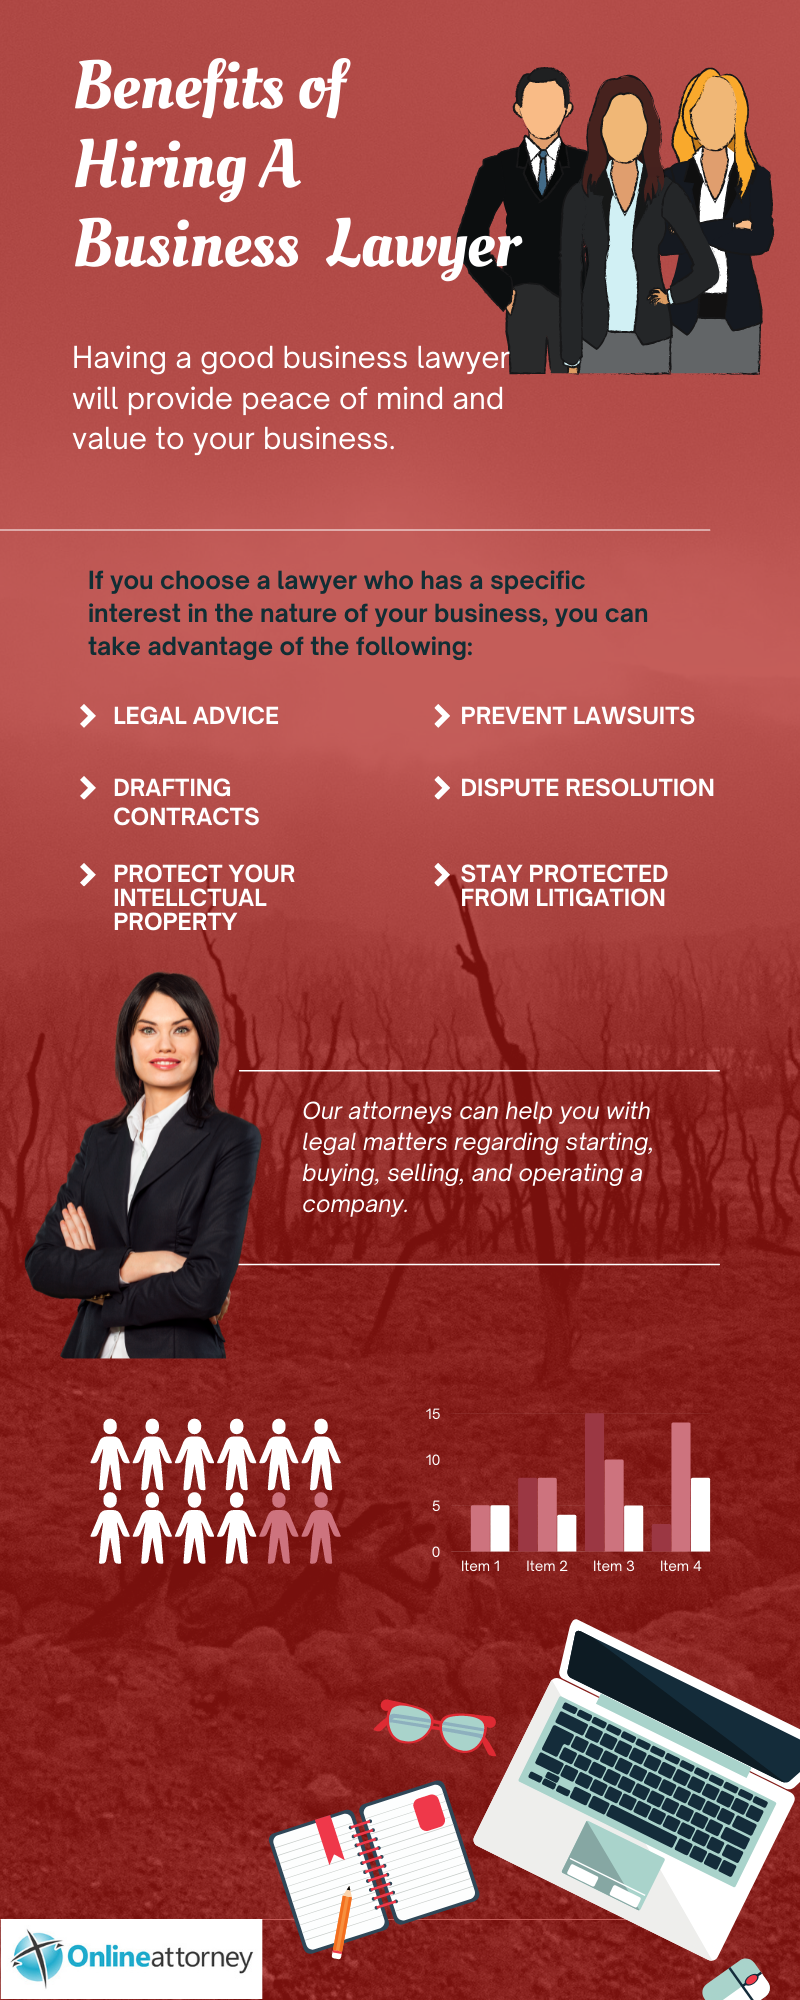 Benefits of hiring a business Lawyer